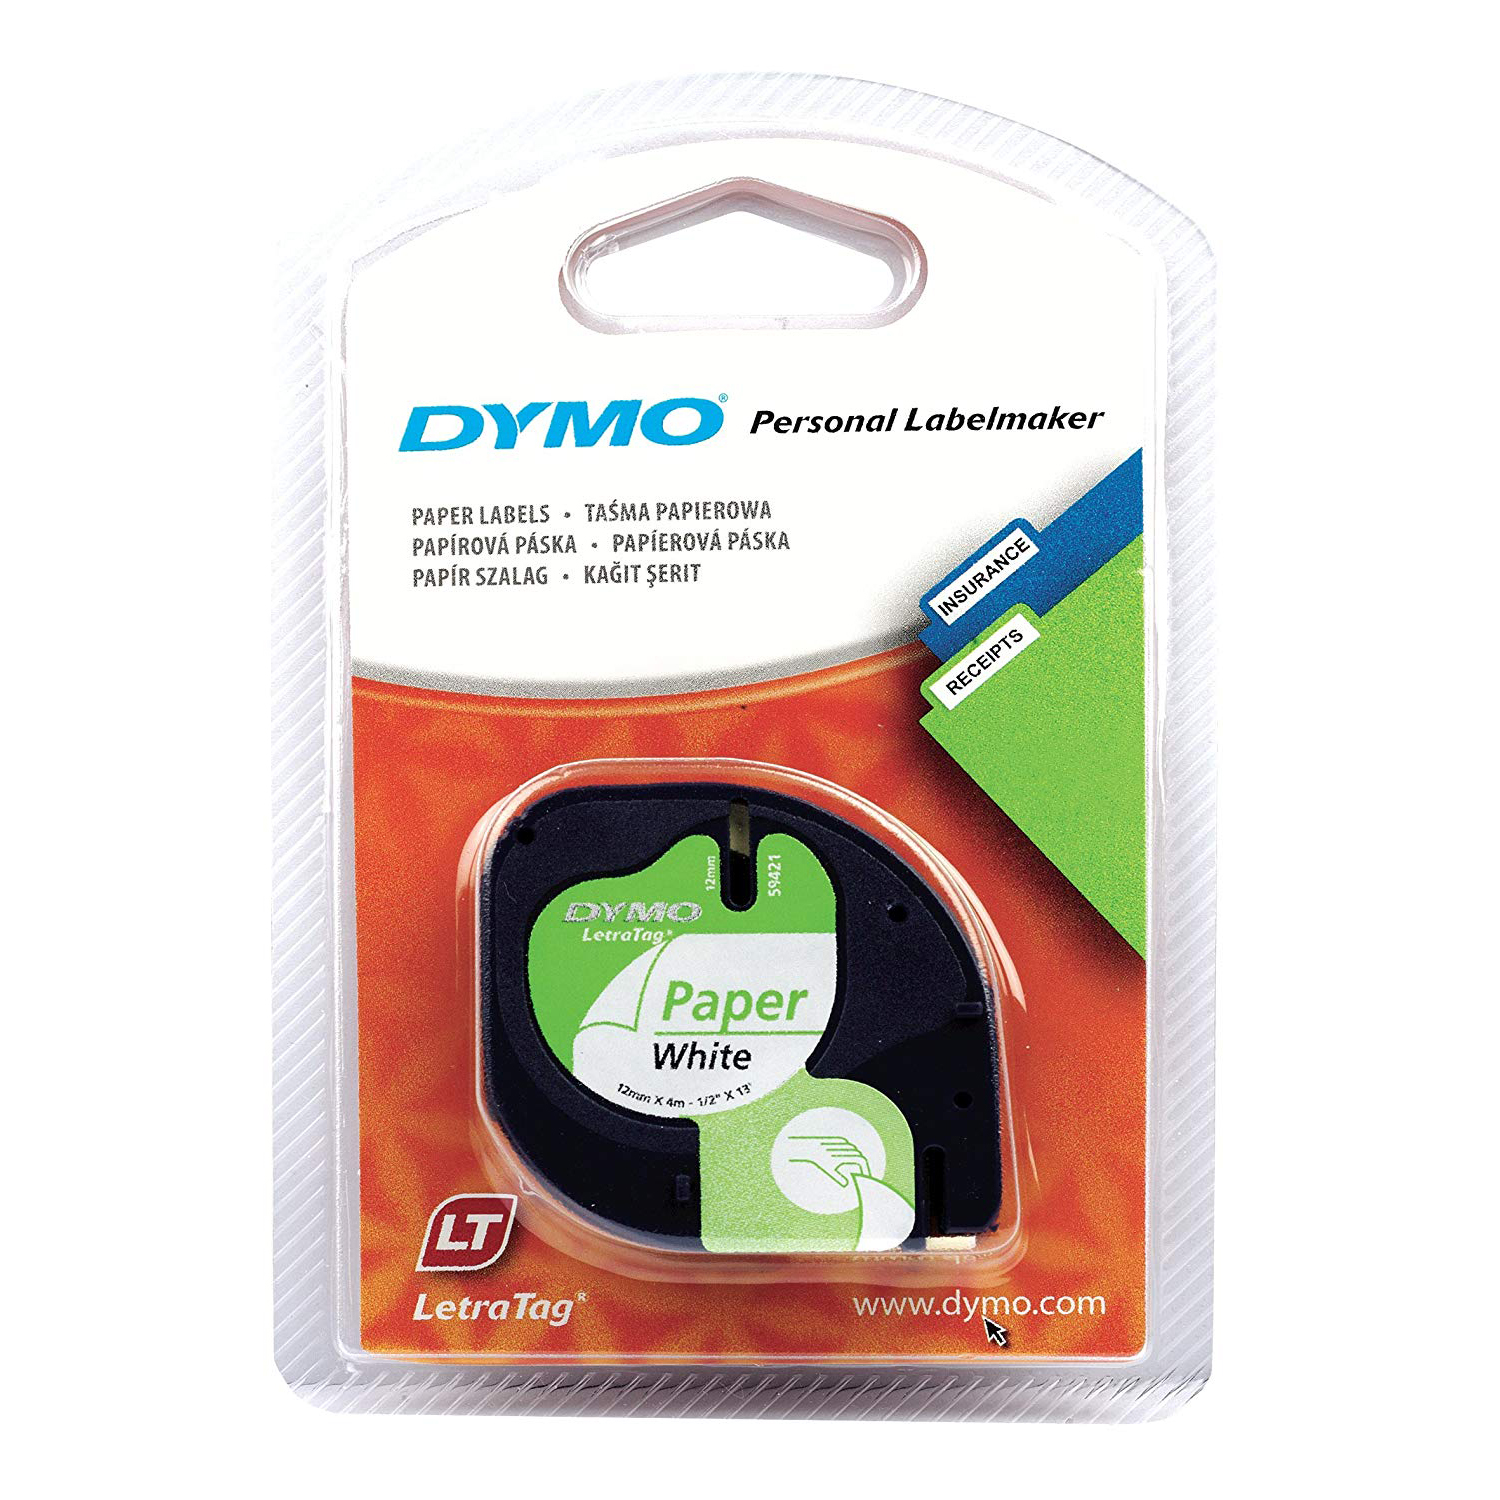 Dymo S0721510 (91200) LetraTag Self-Adhesive Paper Tape 12 mm x 4 m - Black on White (roll)